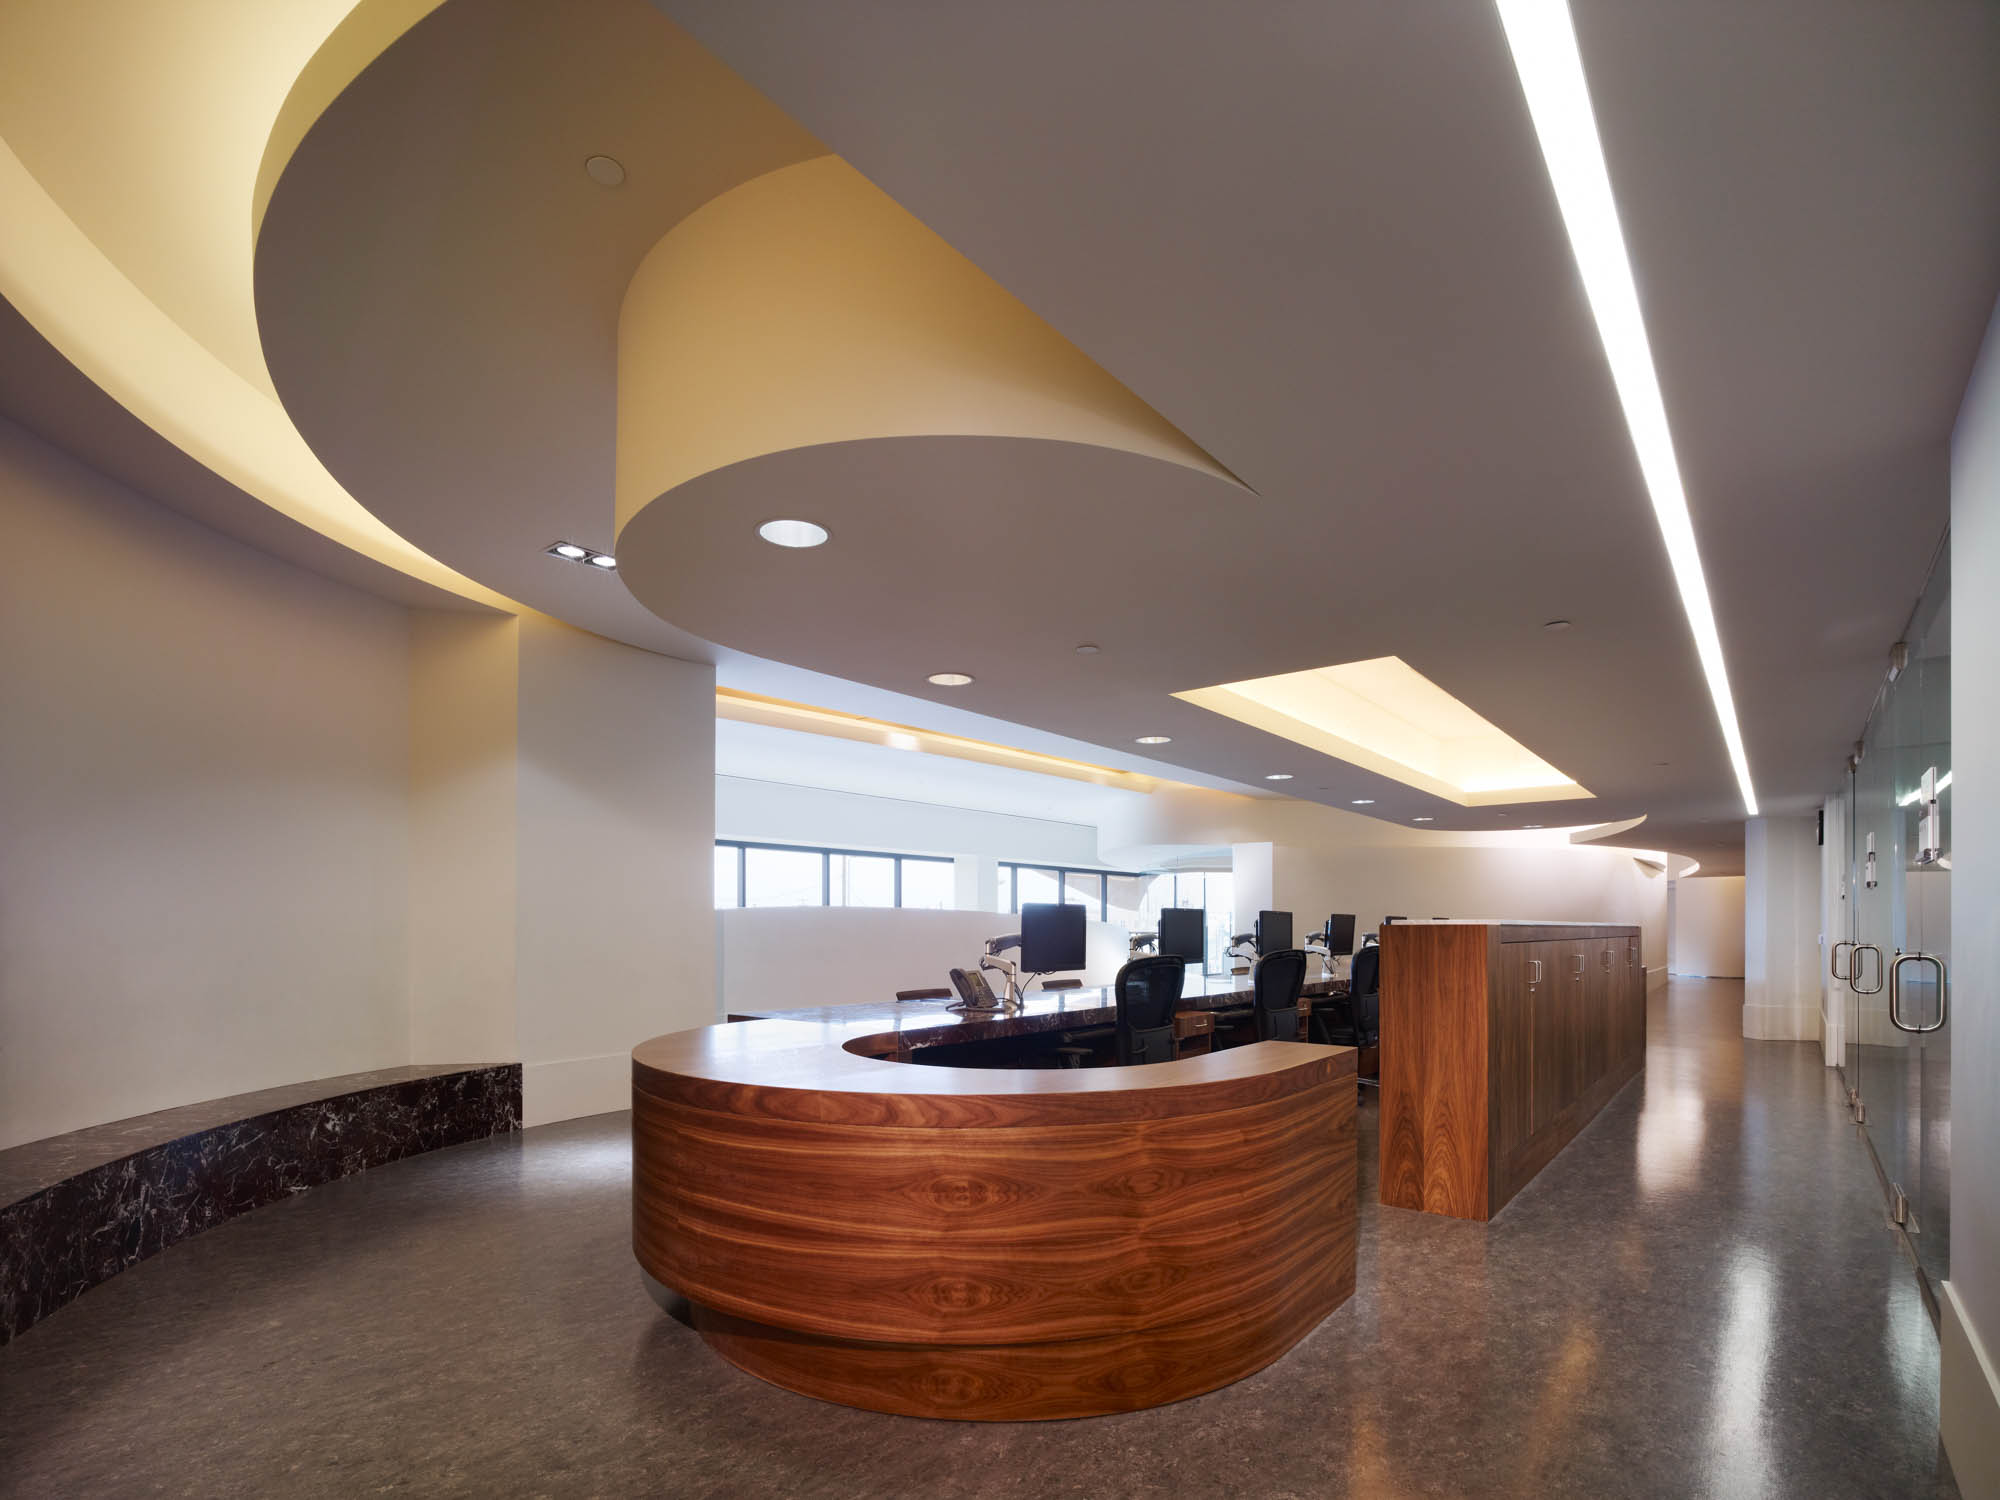 Student Services Administration Building financial services desk